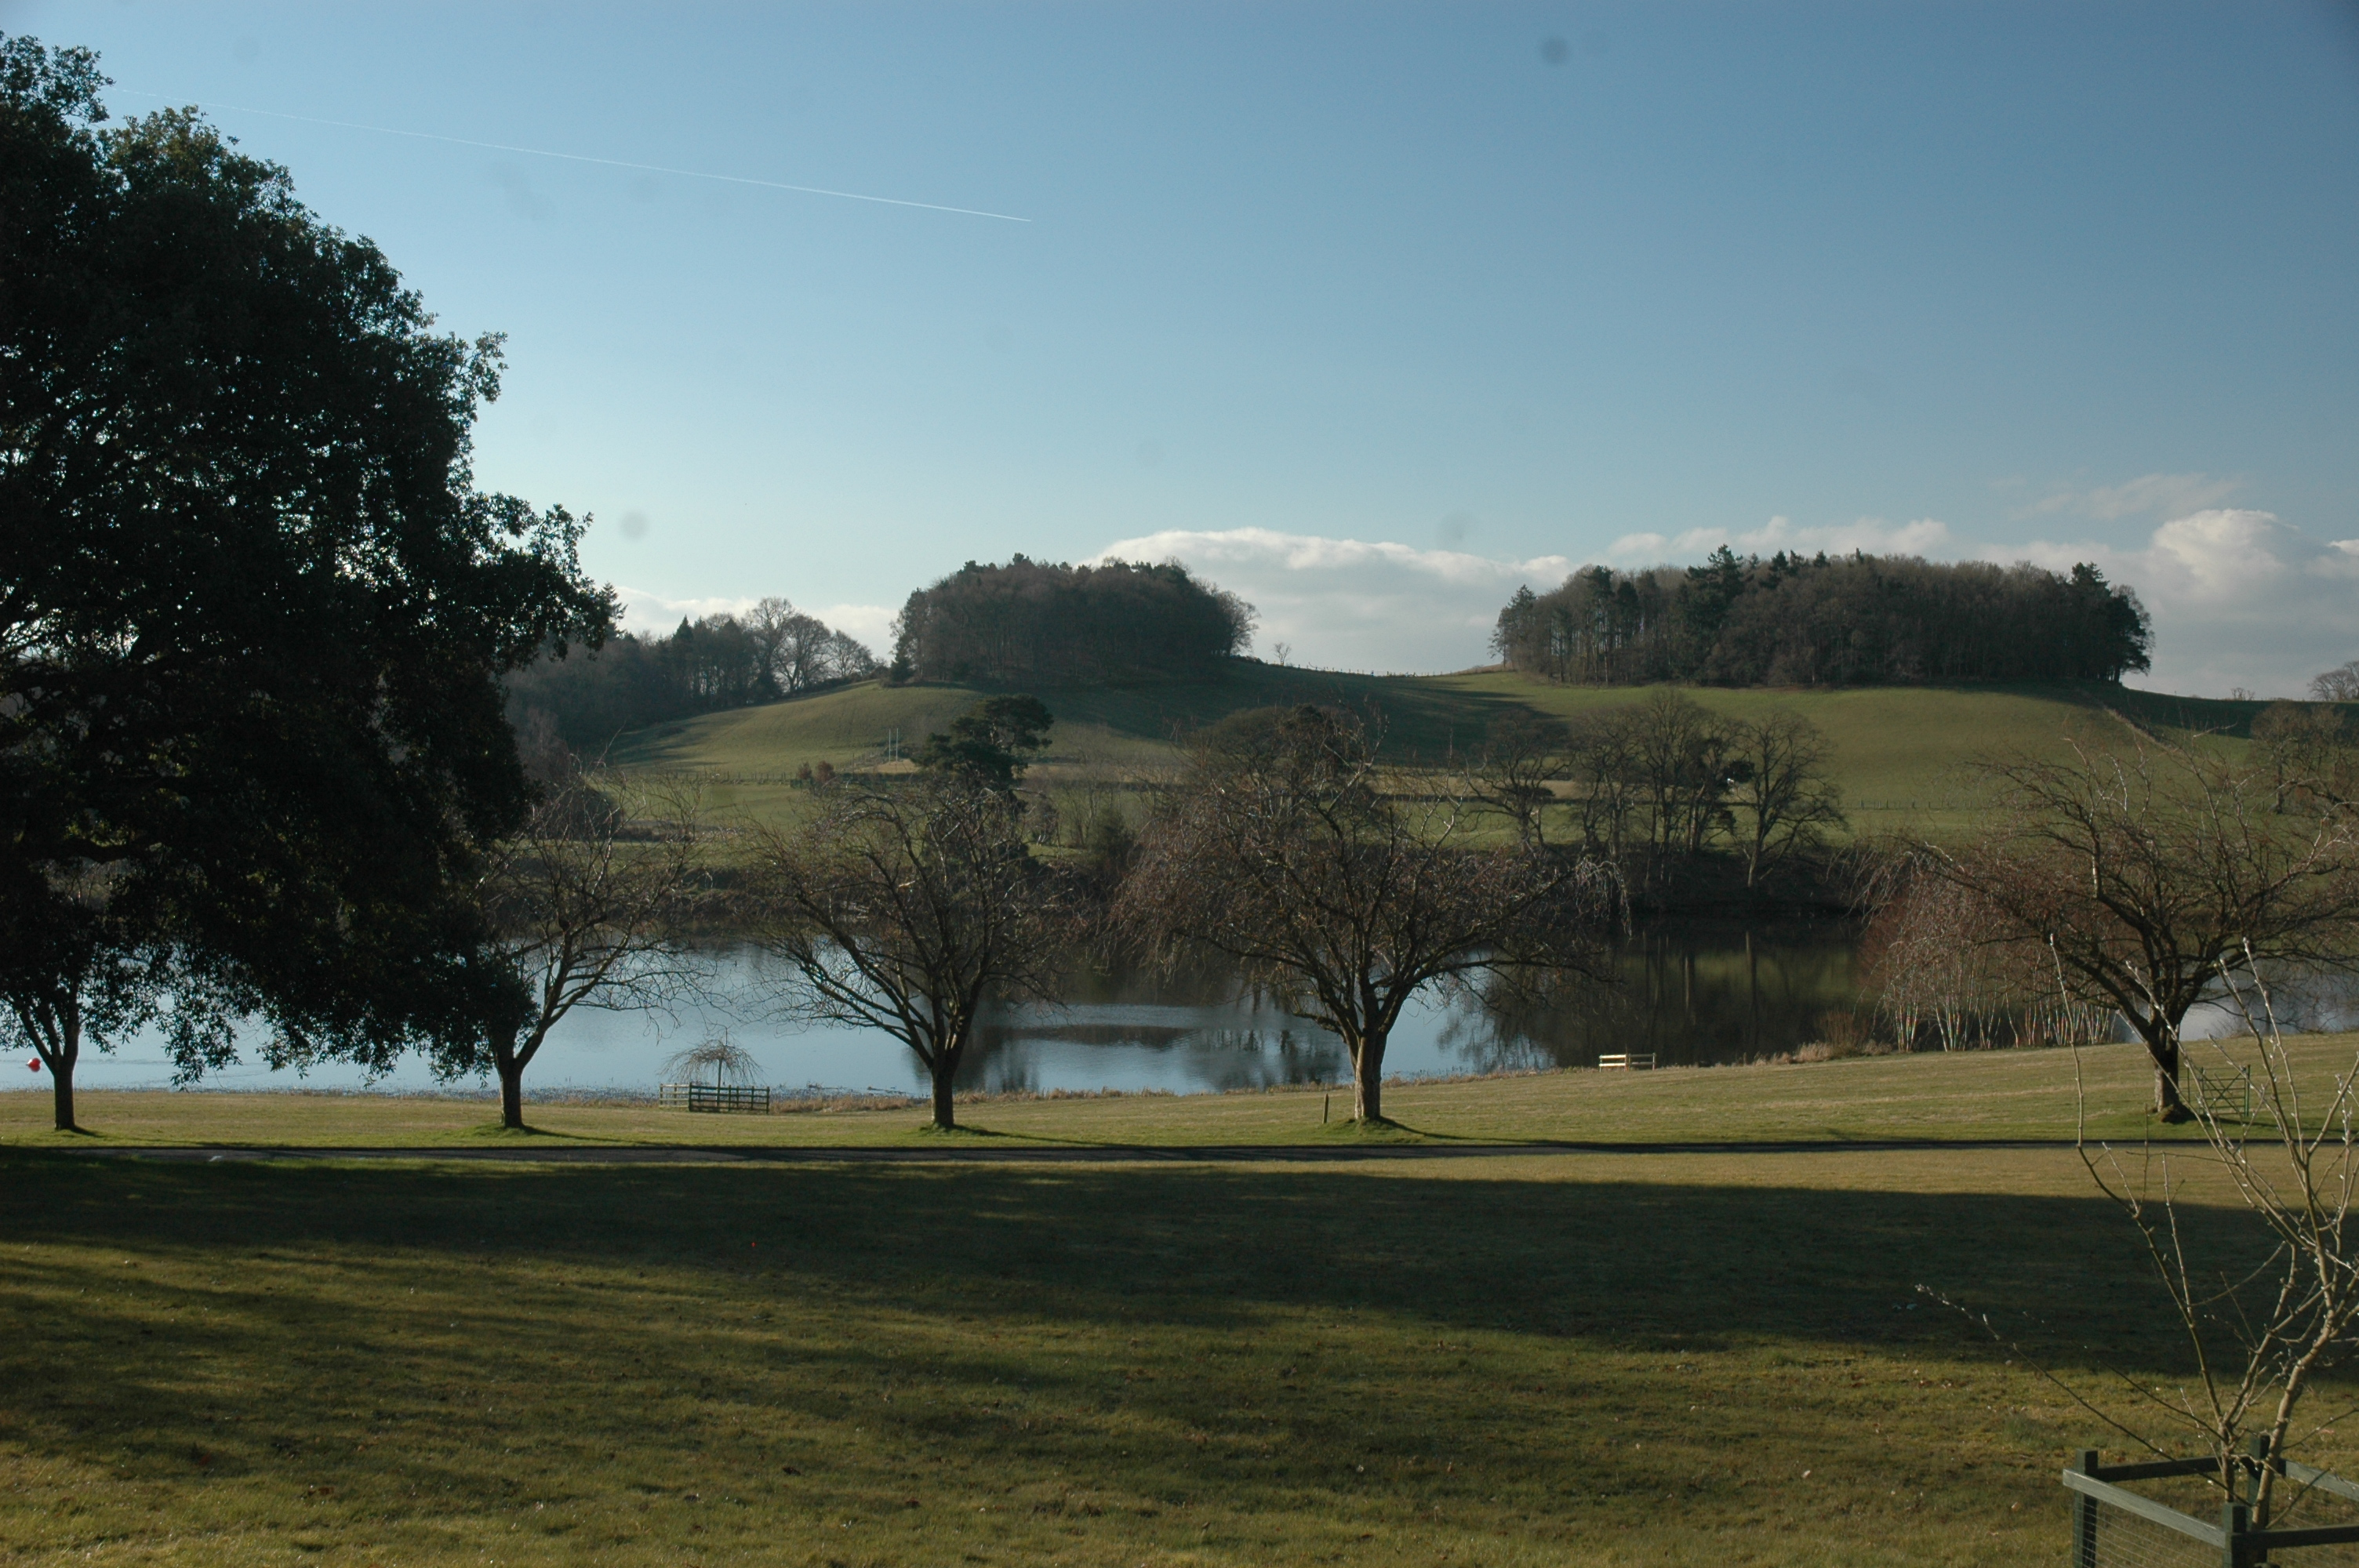 A view of the grounds of Dromantine Retreat Center in Northern Ireland